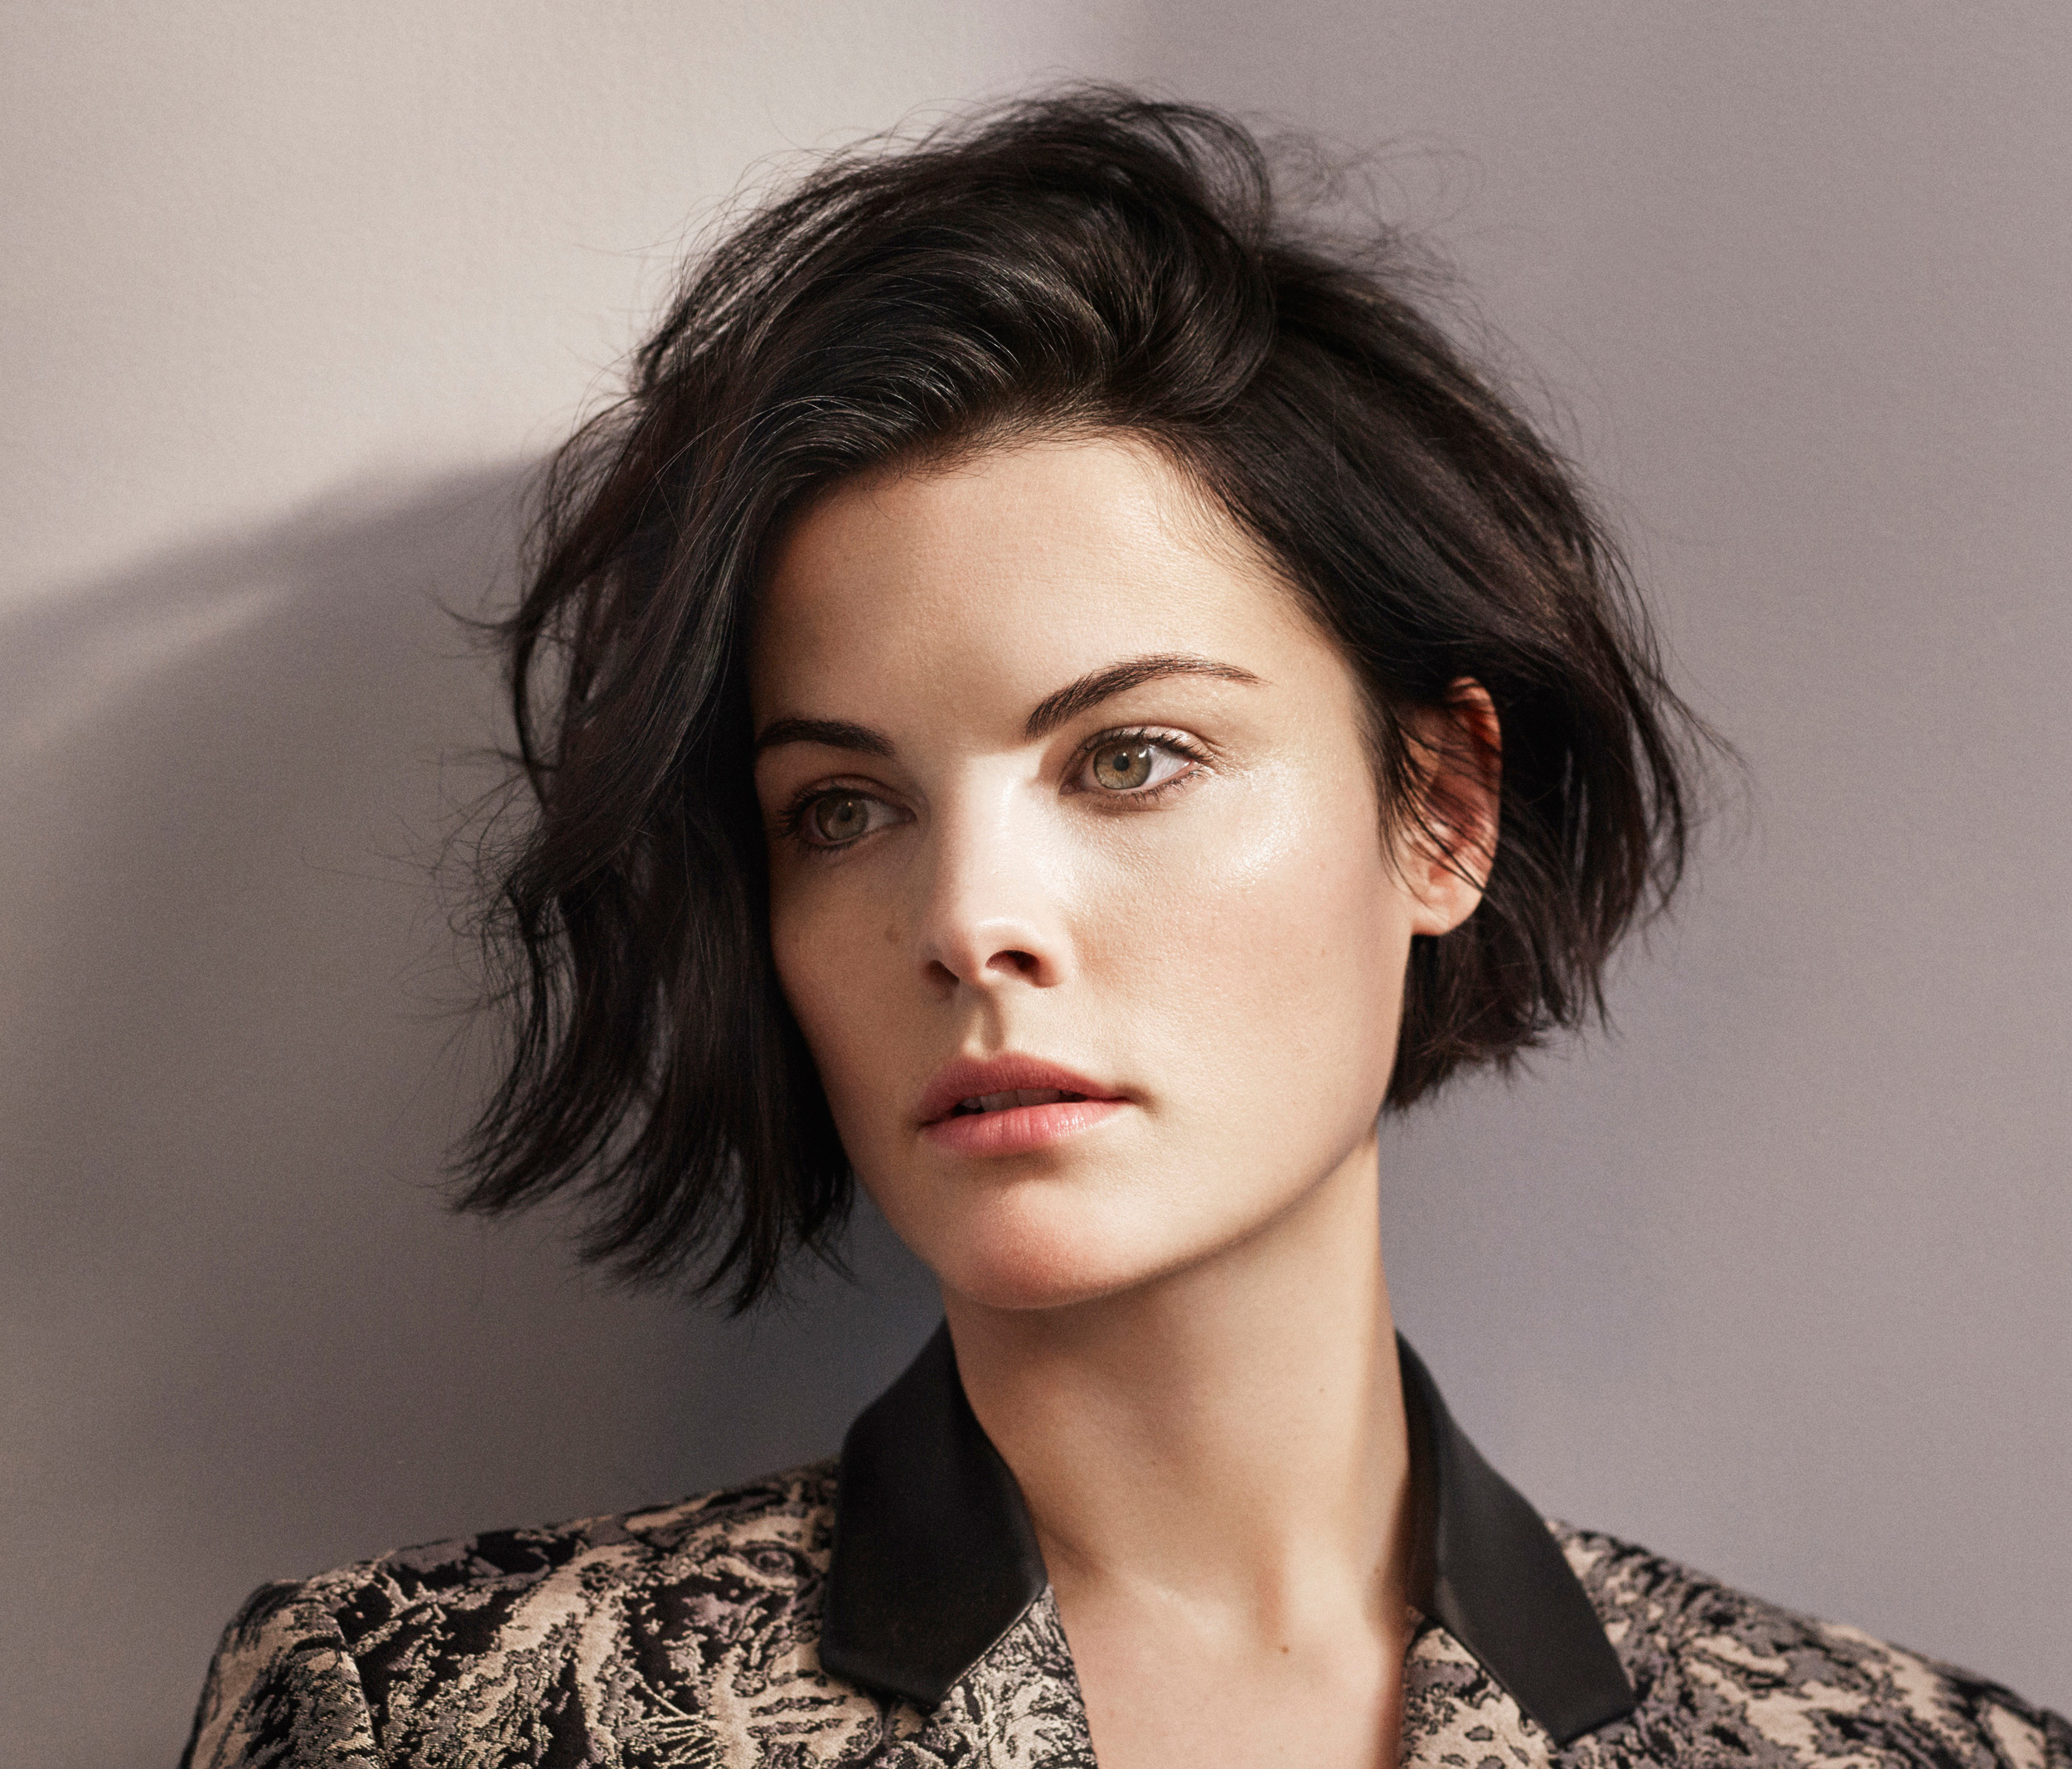 Jaimie Alexander Instyle 2017 New, HD Celebrities, 4k